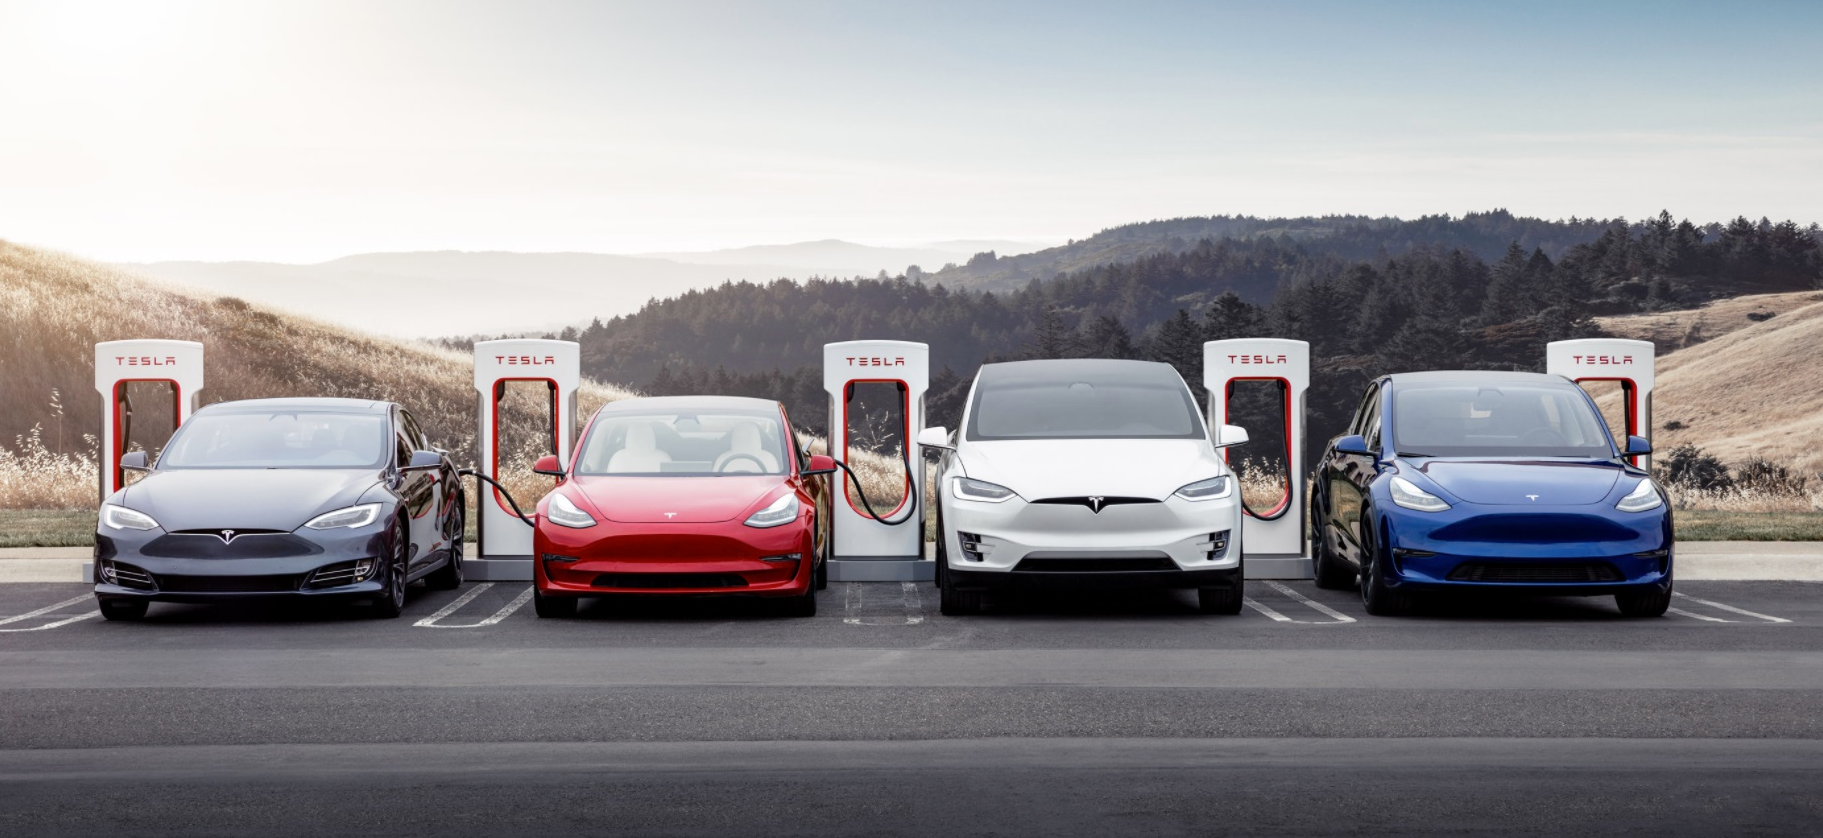 Tesla is looking of applicants in the Vancouver and Toronto area To Host Superchargers